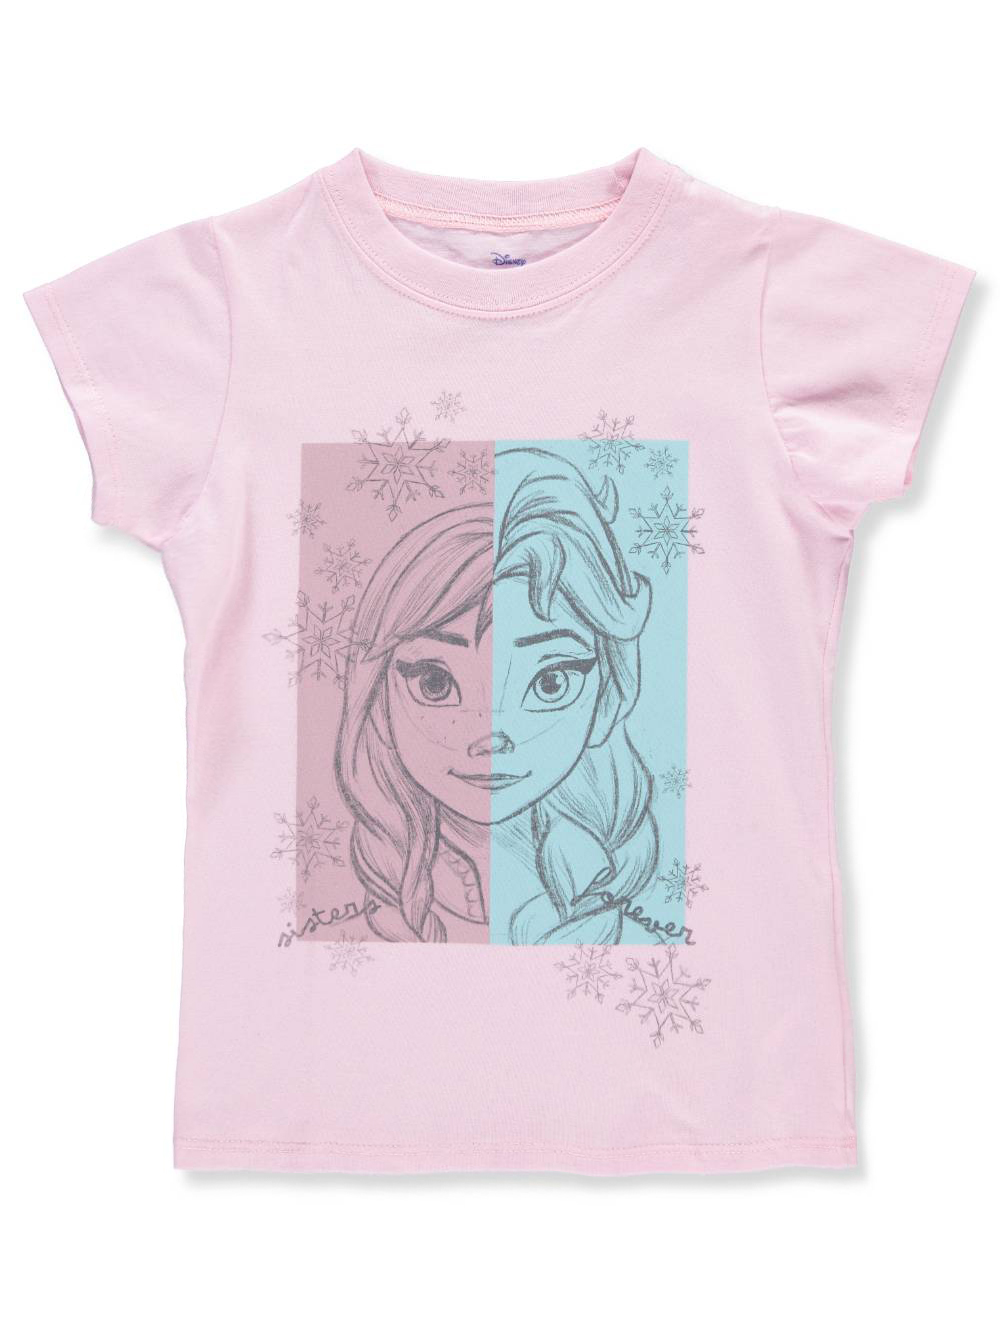 Frozen Girls' T-Shirt Featuring Anna & Elsa